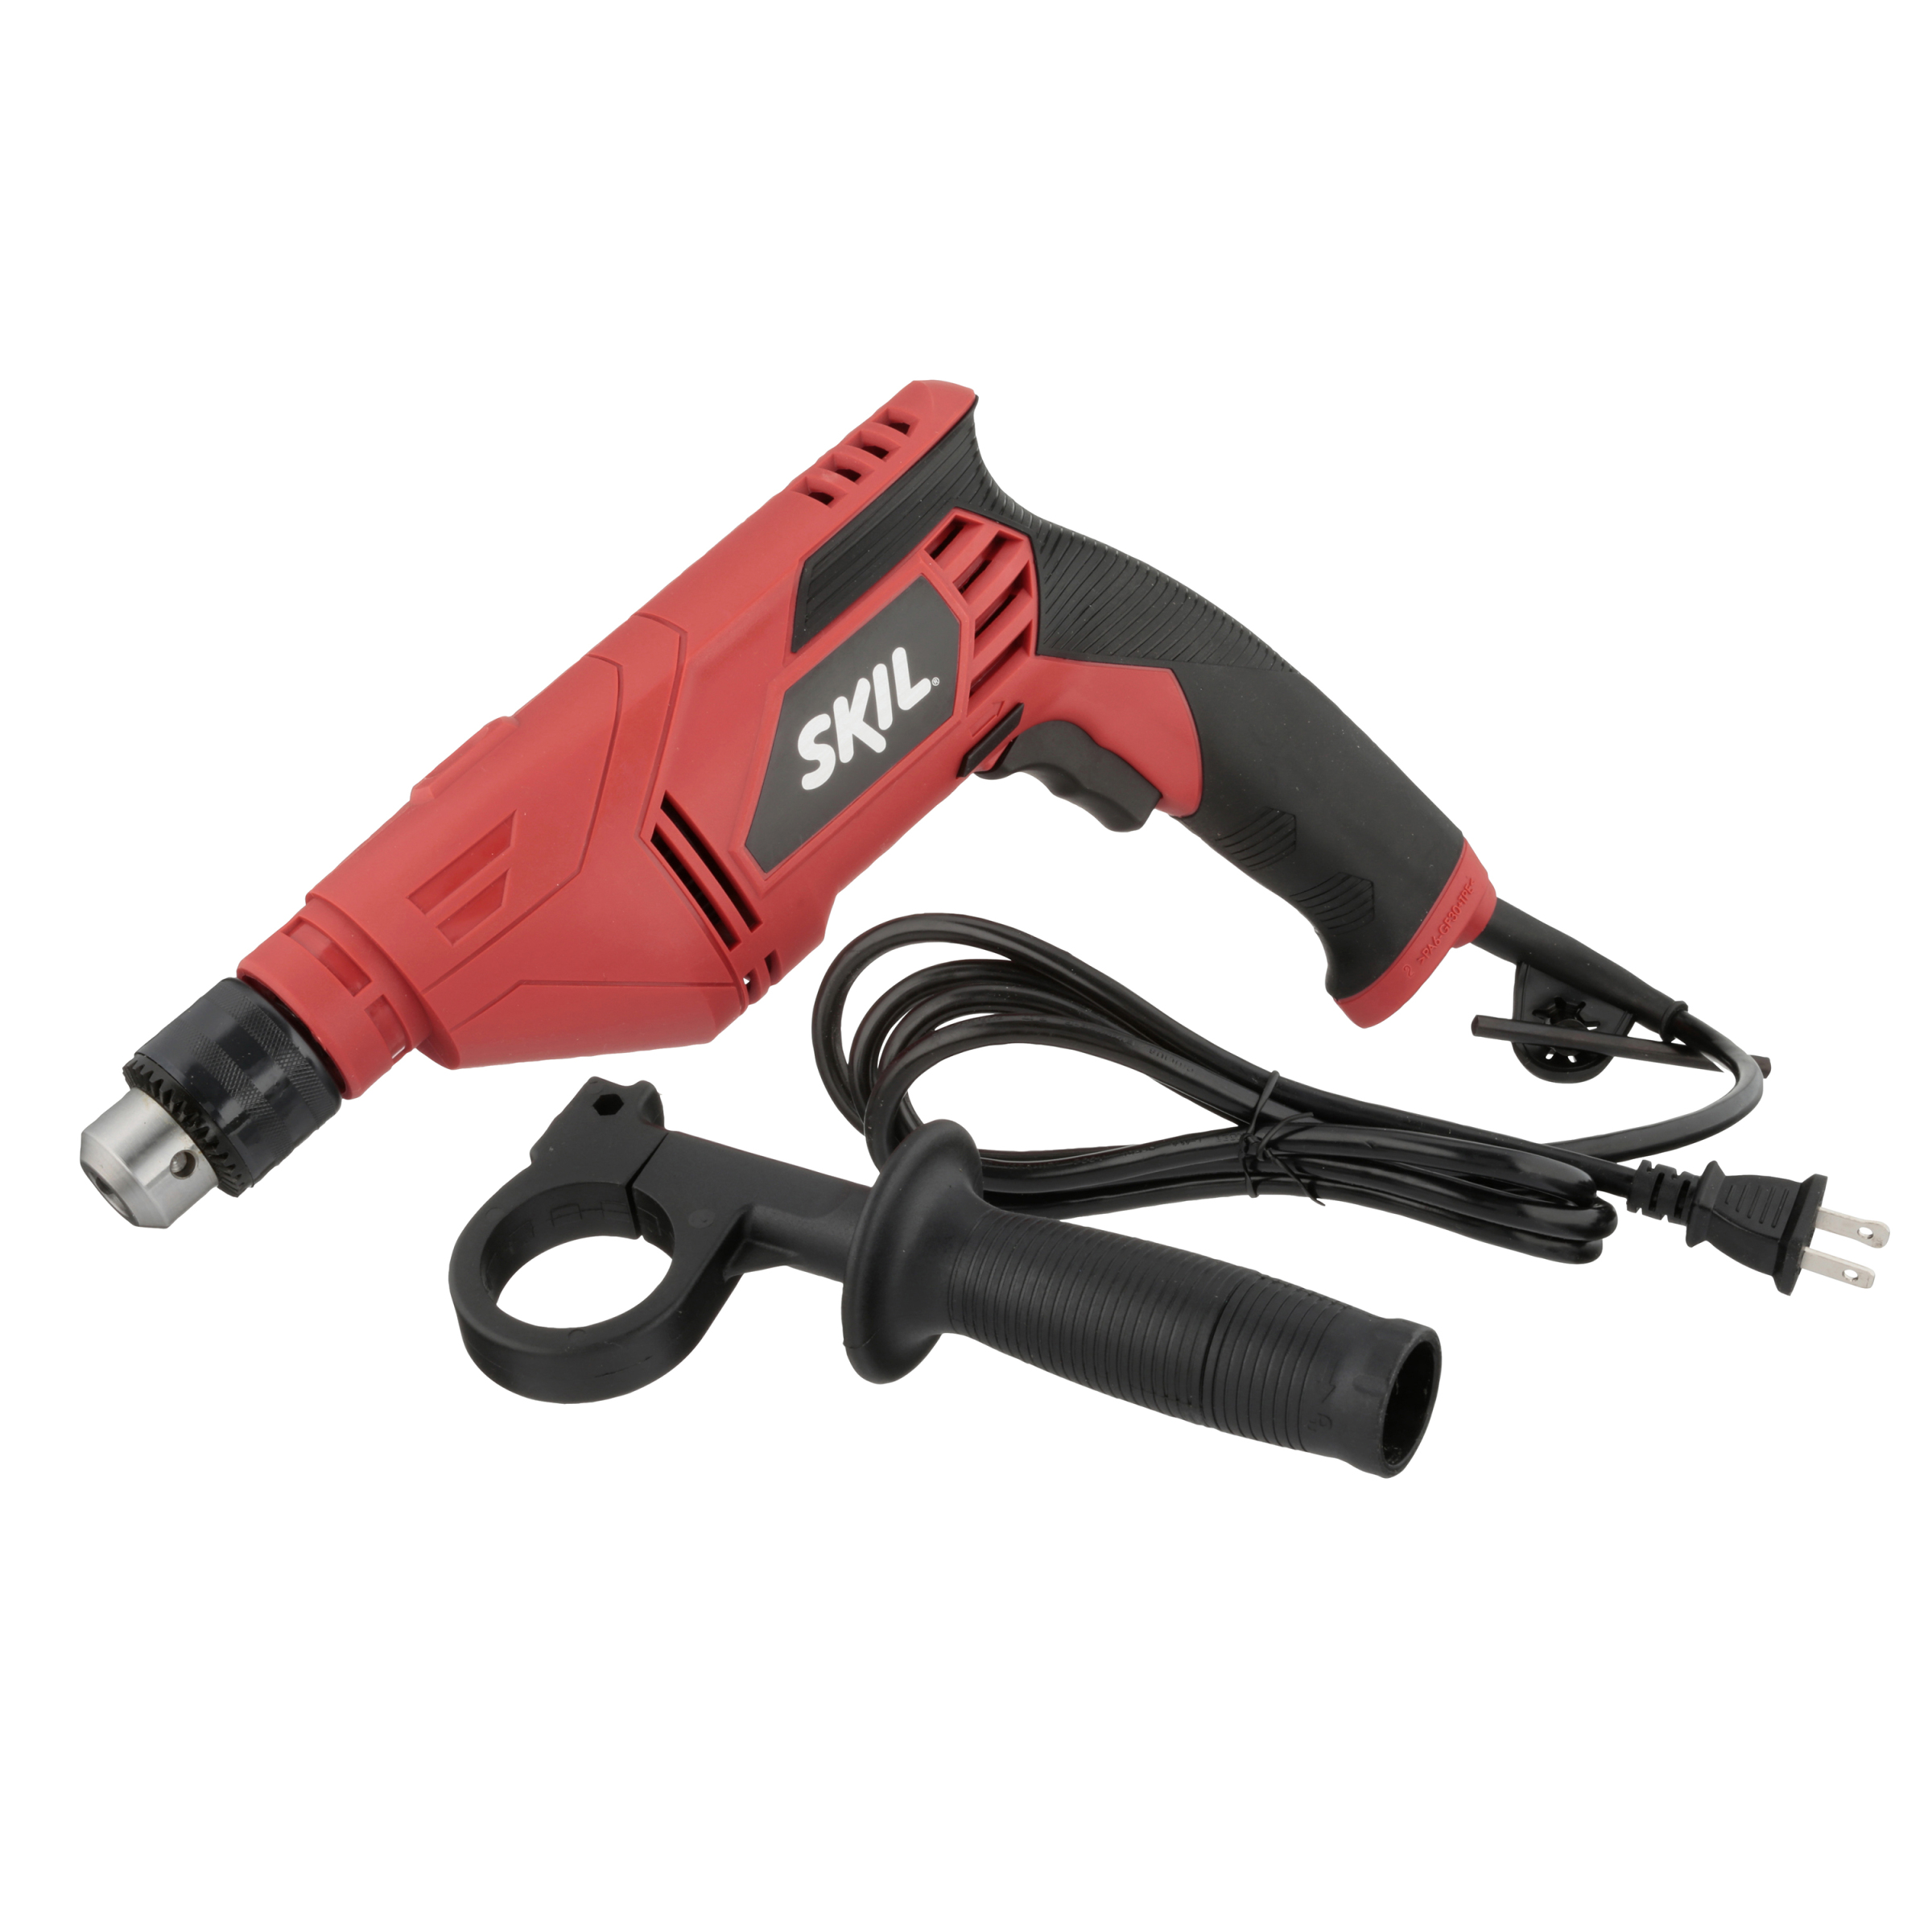 Skil 6335-02 7.0-Amps Corded 1/2-Inch Drill